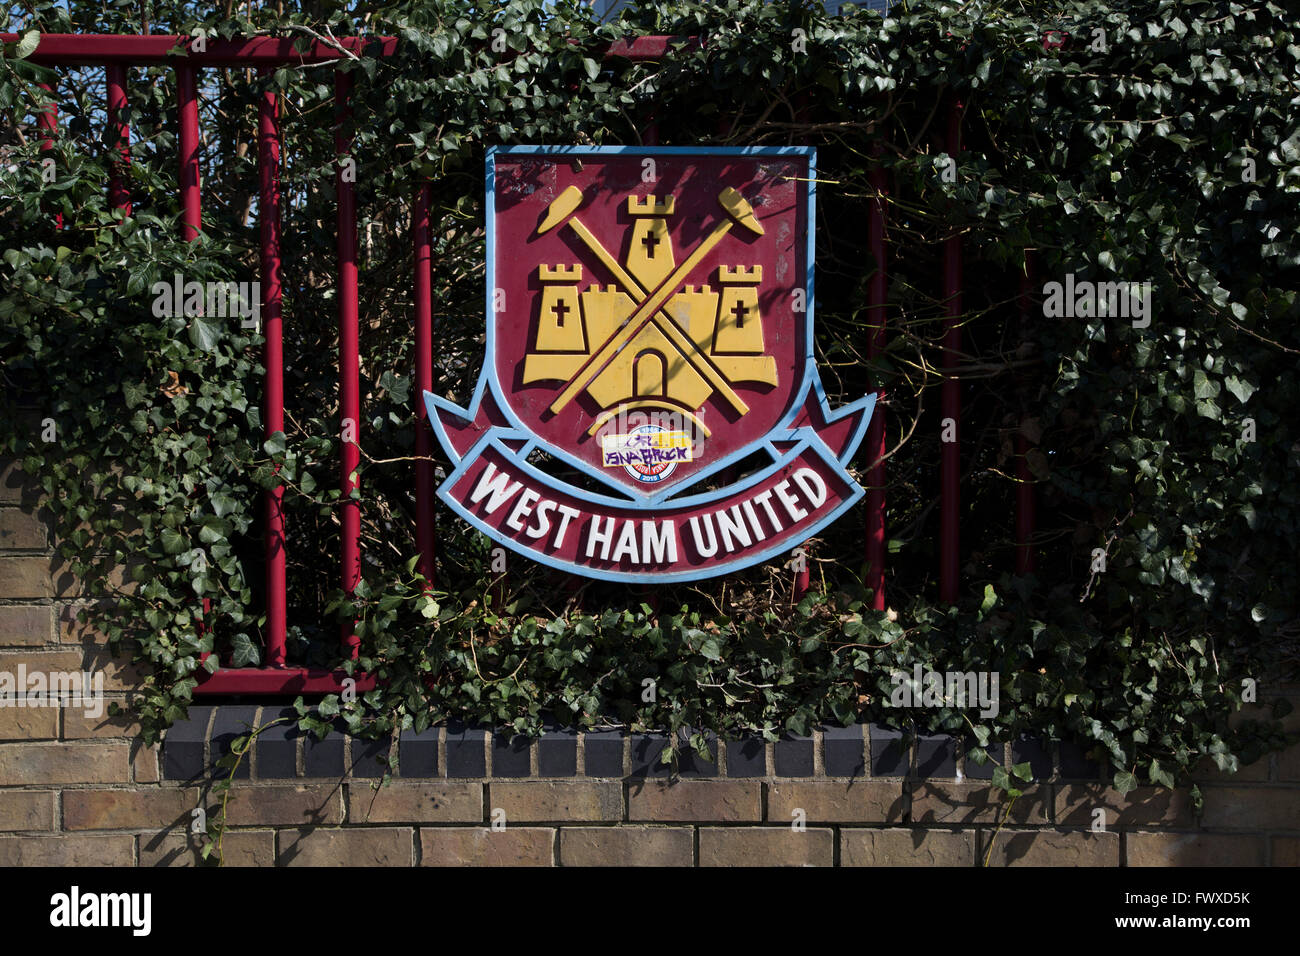 A club crest on railings at the entrance to the Boleyn Ground, pictured before West Ham United hosted Crystal Palace - Stock Image